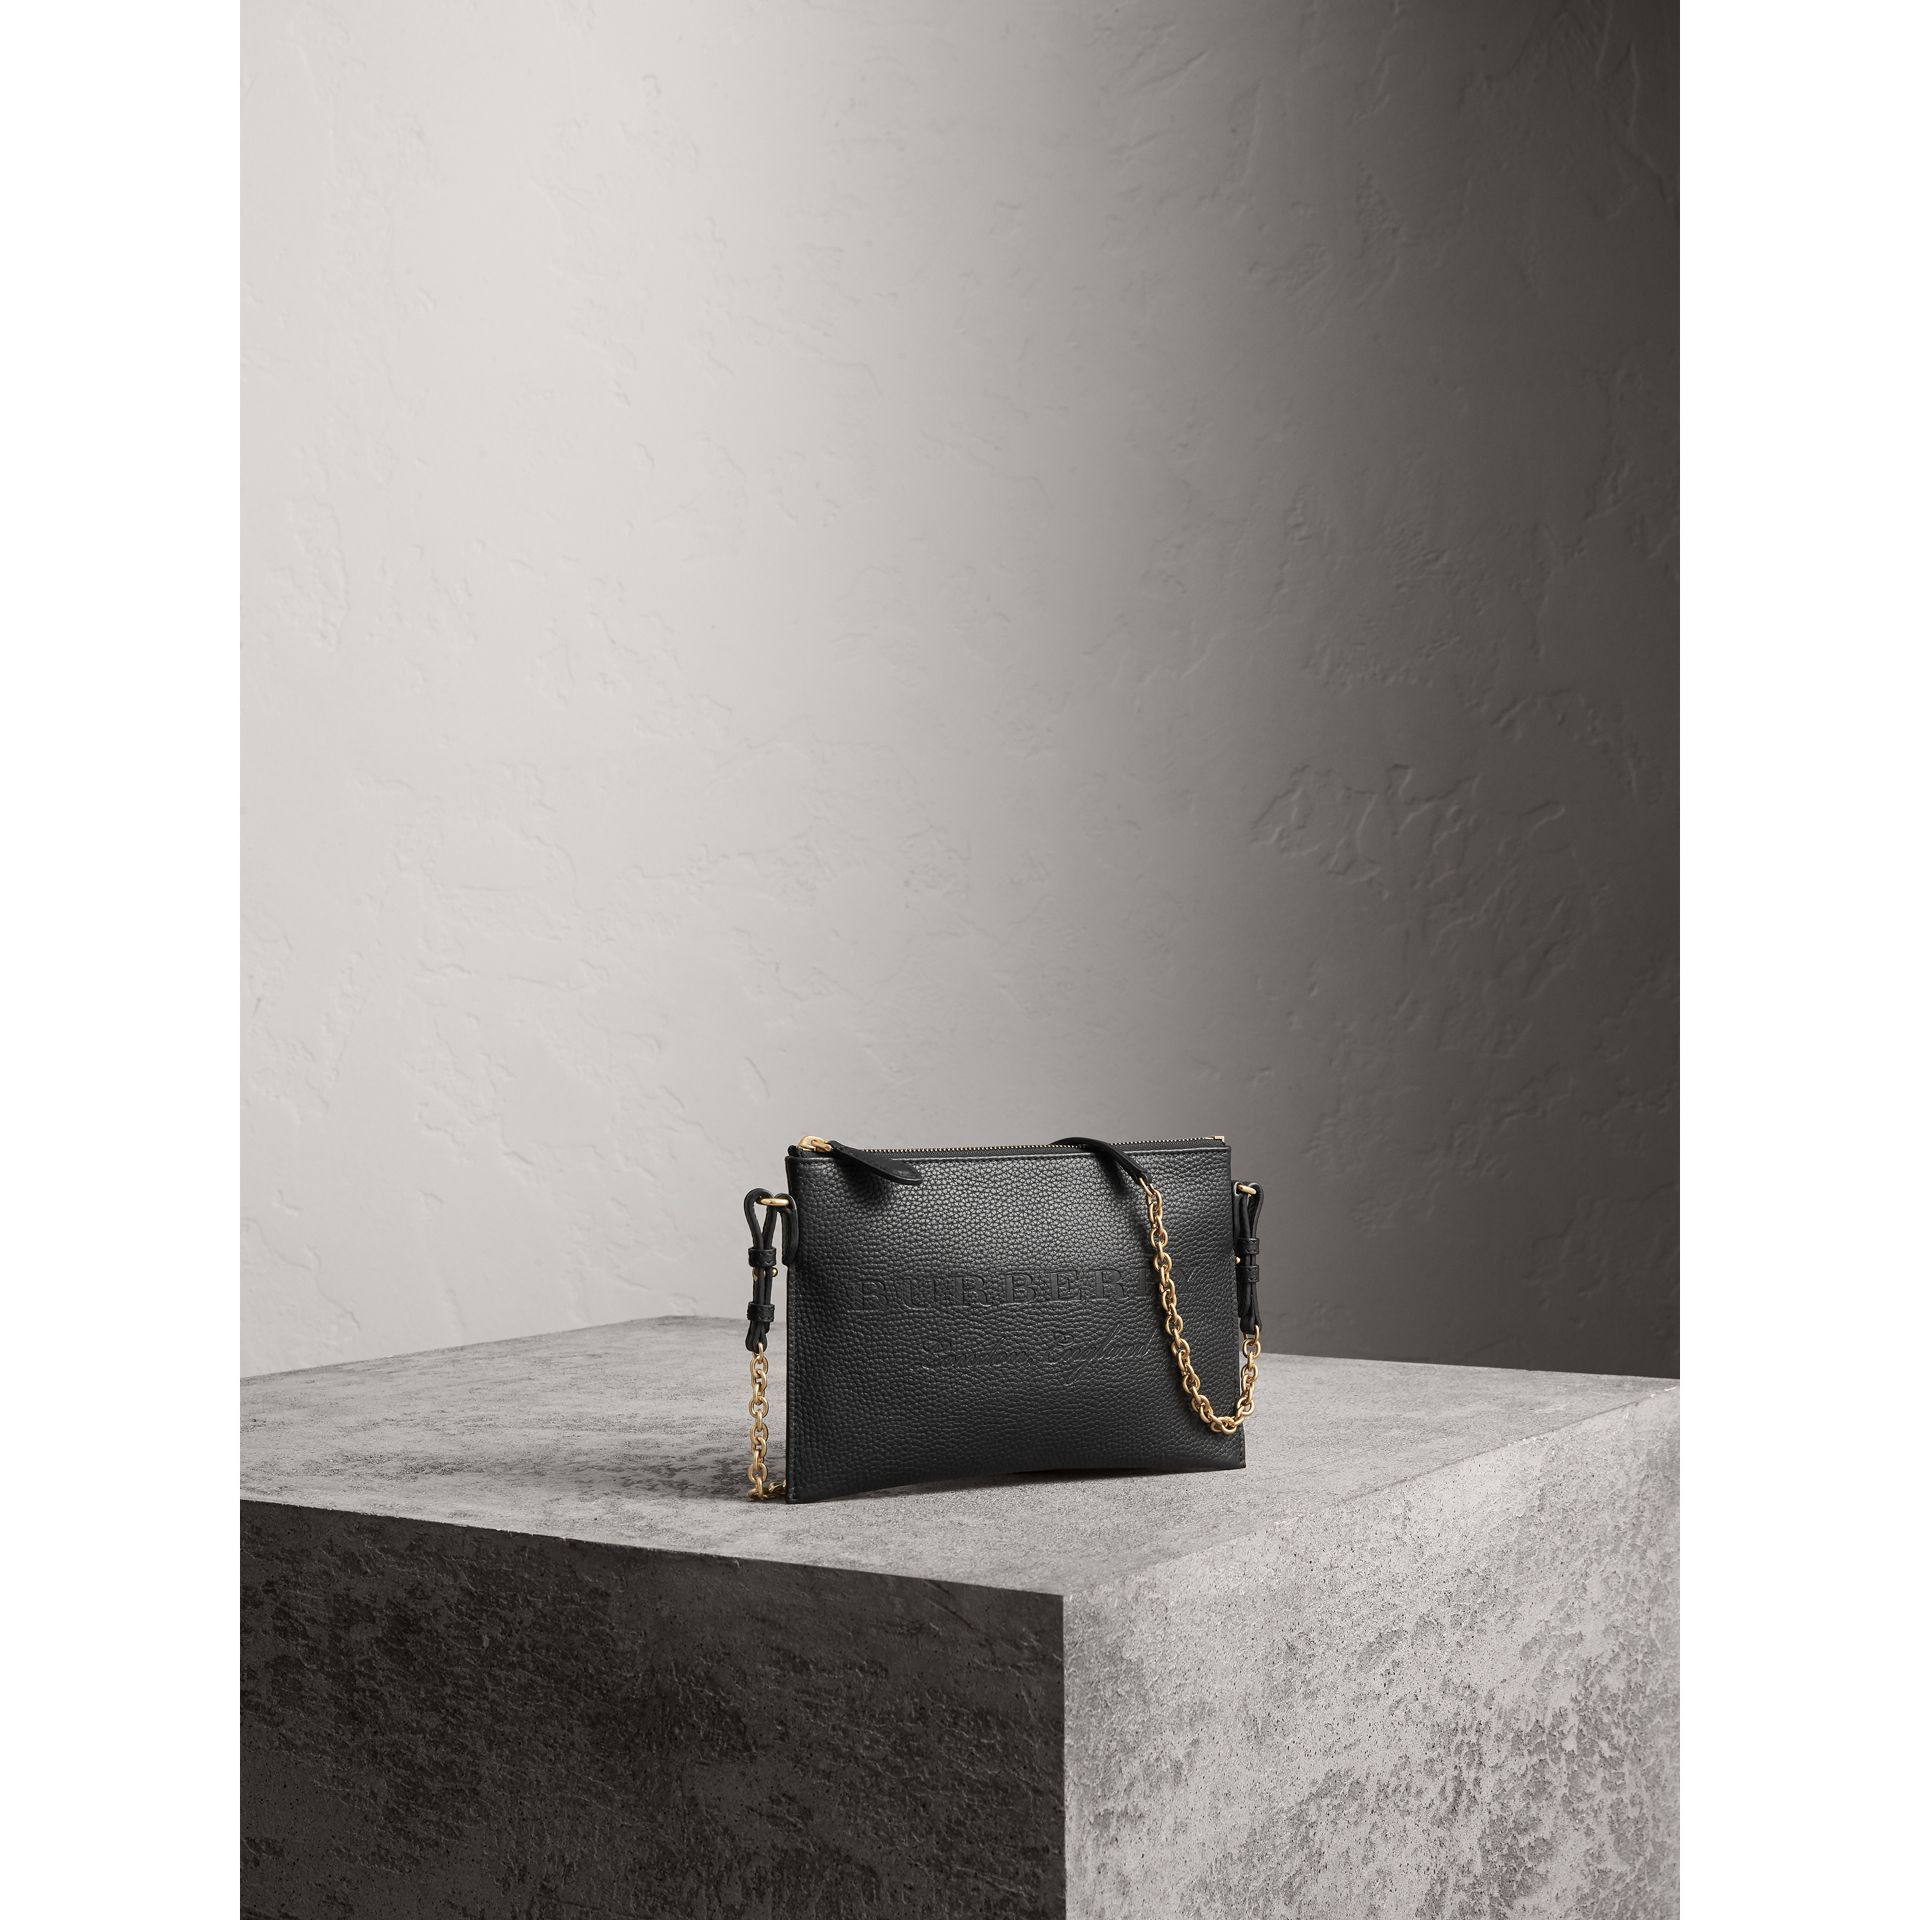 Embossed Leather Clutch Bag in Black - Women | Burberry Canada - gallery image 6